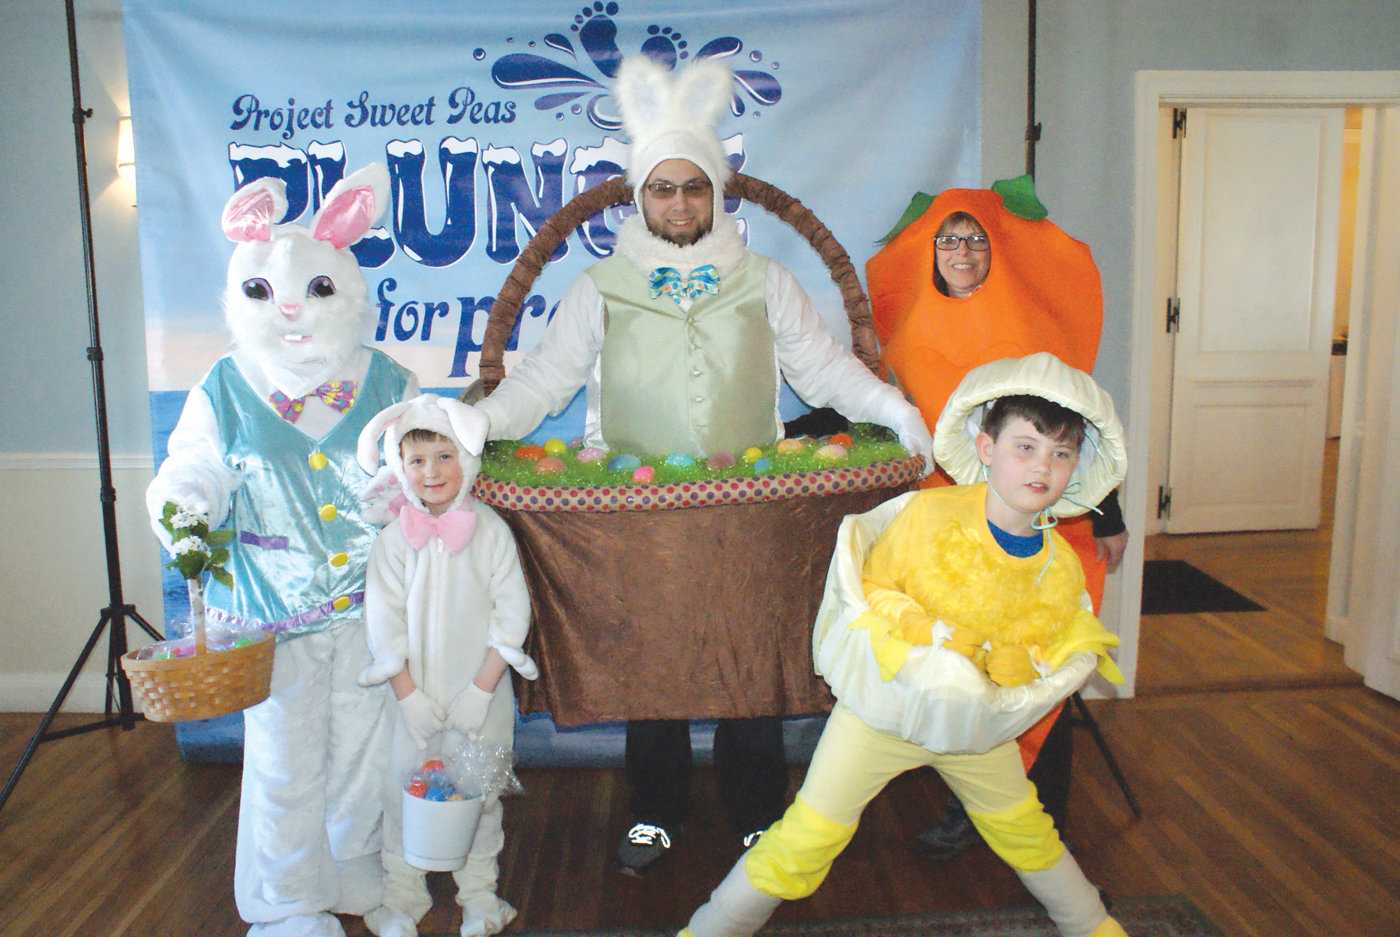 HENRY'S HEREOS: Pictured are members of Team Henry's Heroes dressed up for Easter at the 9th Annual Plunge for Preemies at the Warwick Country Club. They are standing (back row): Pat Lopes, Kevin Powers, Gail Powers and in front are Henry Cook and Jack Cook. Henry was a six-week early preemie who is now 5 years old. All are Warwick residents.